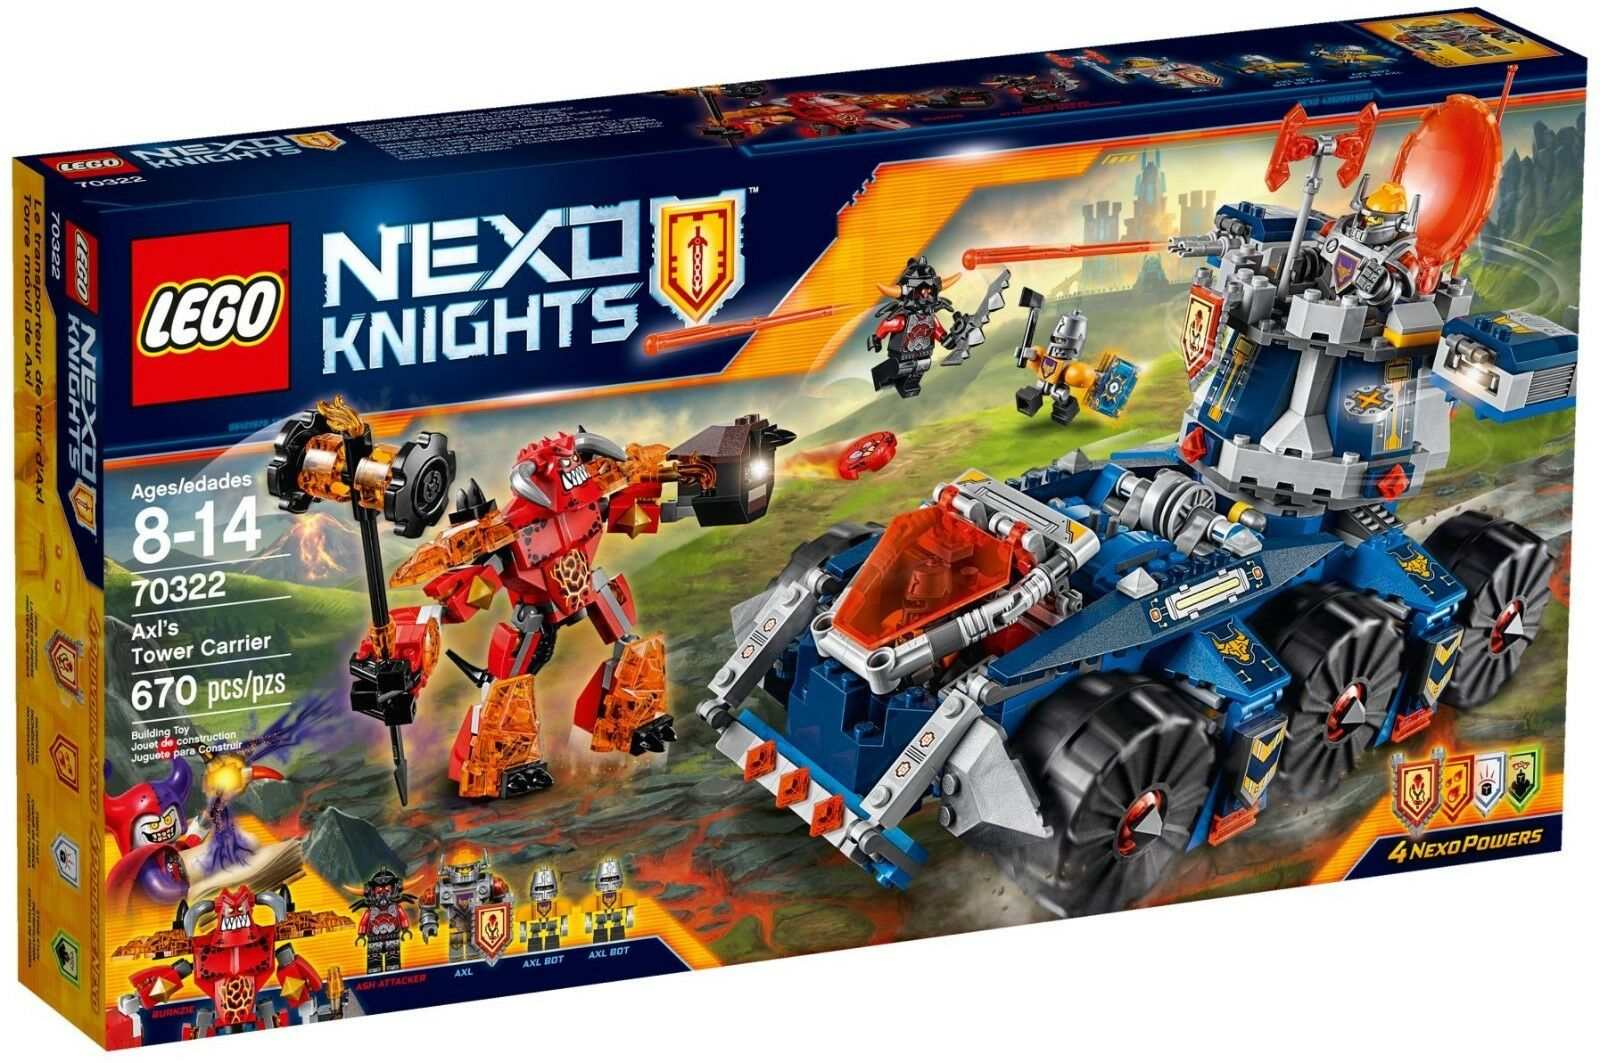 Lego Nexo Knights Axl's Tower Carrier Playset - 70322-à la retraite